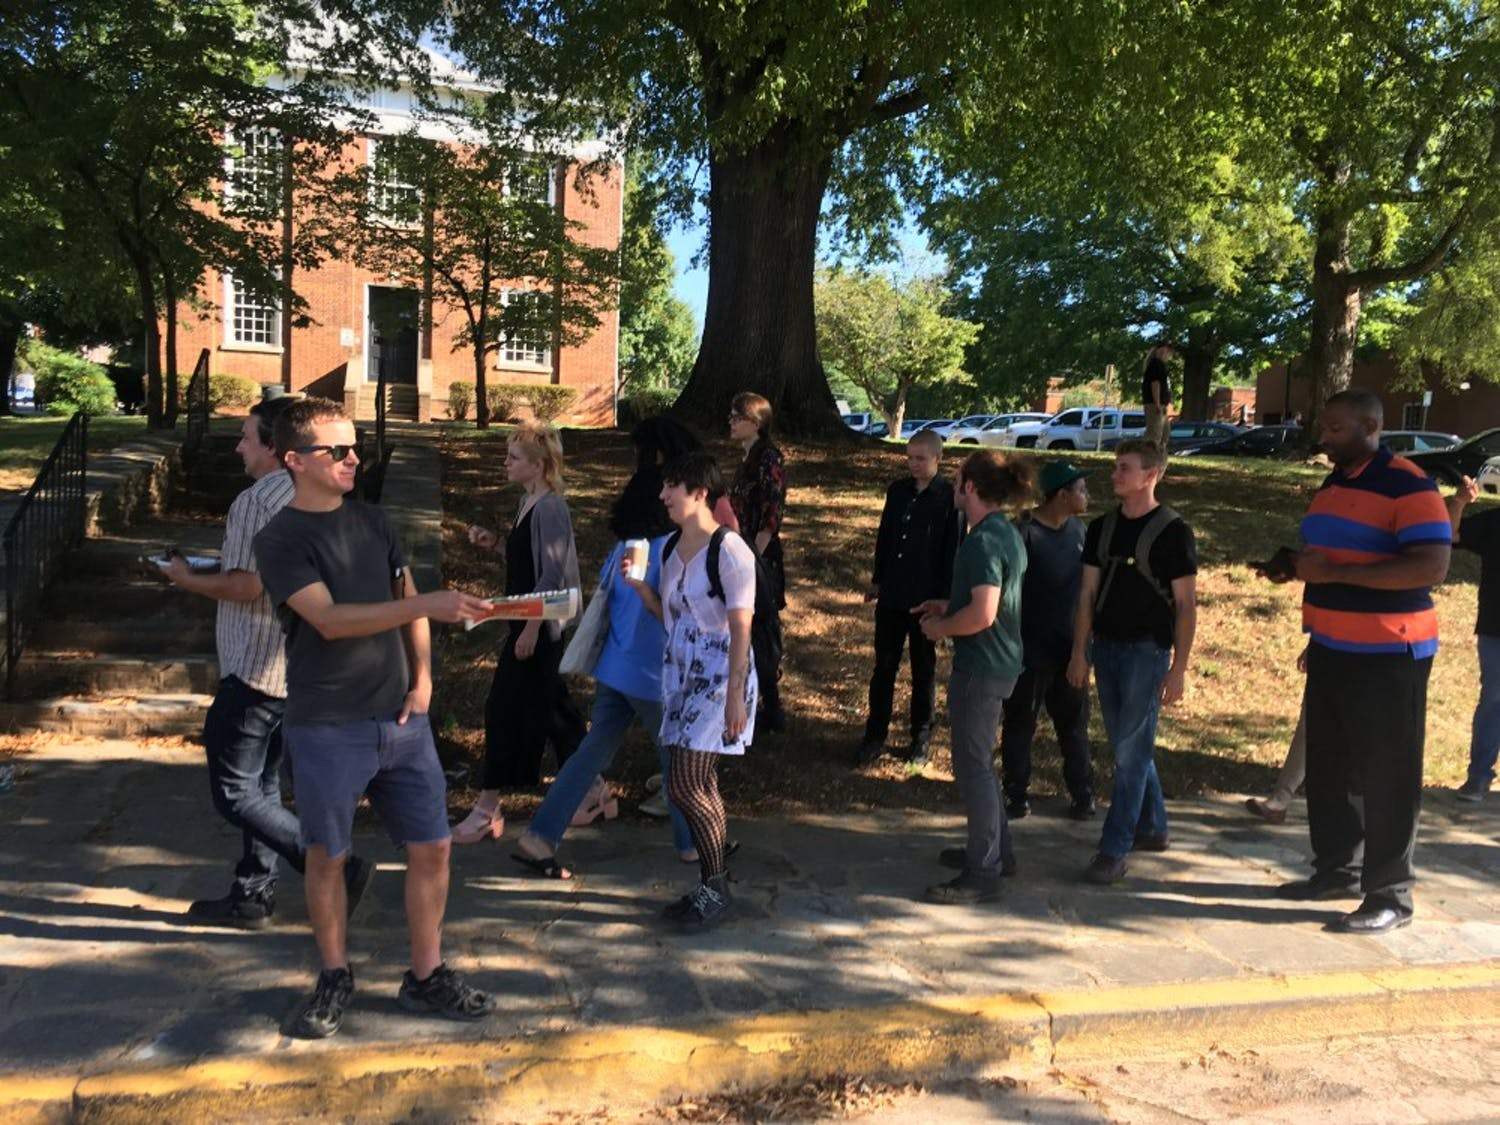 The crowd of supporters disperse after most recent Silent Sam court appearances on Thursday Sept. 6.